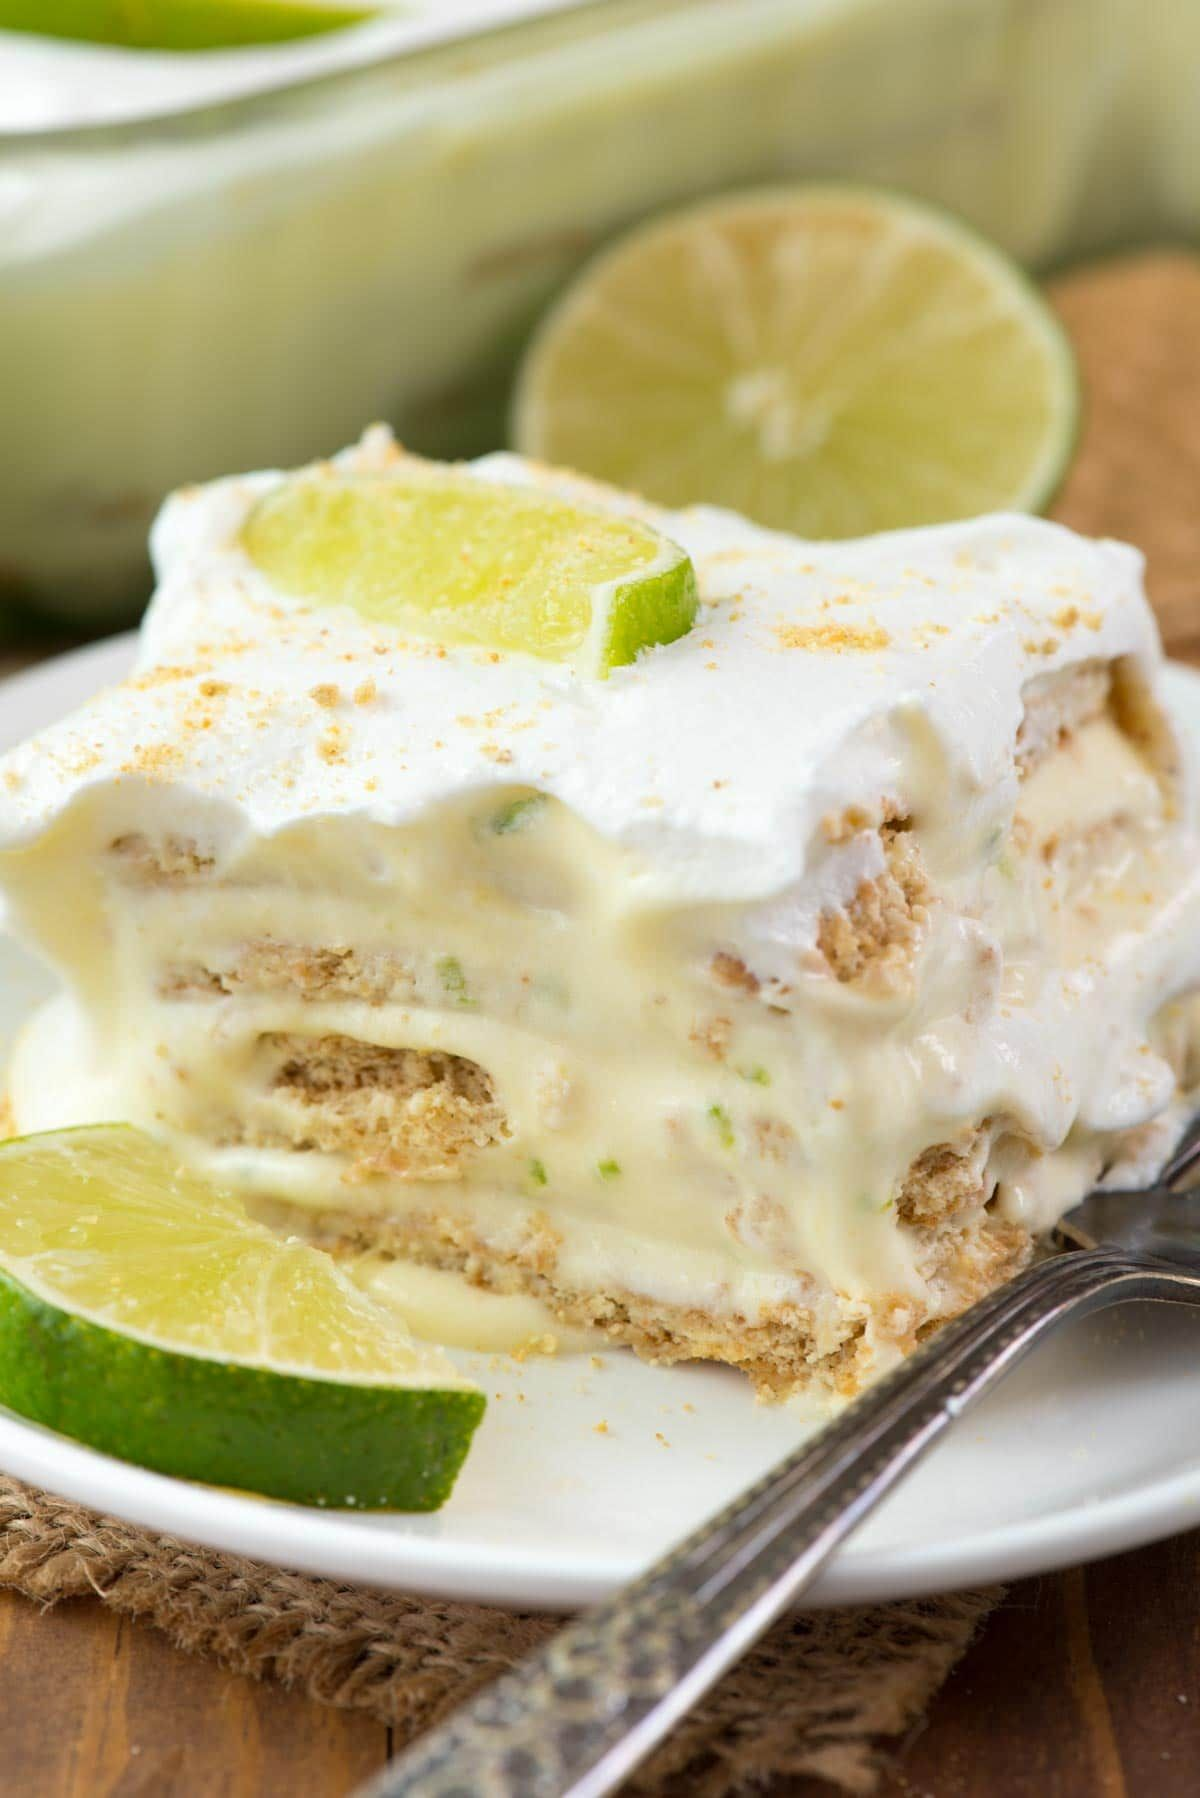 No Bake Key Lime Eclair - this easy no bake recipe is like key lime pie in the form of an easy eclair! It really does taste like an eclair without the work!